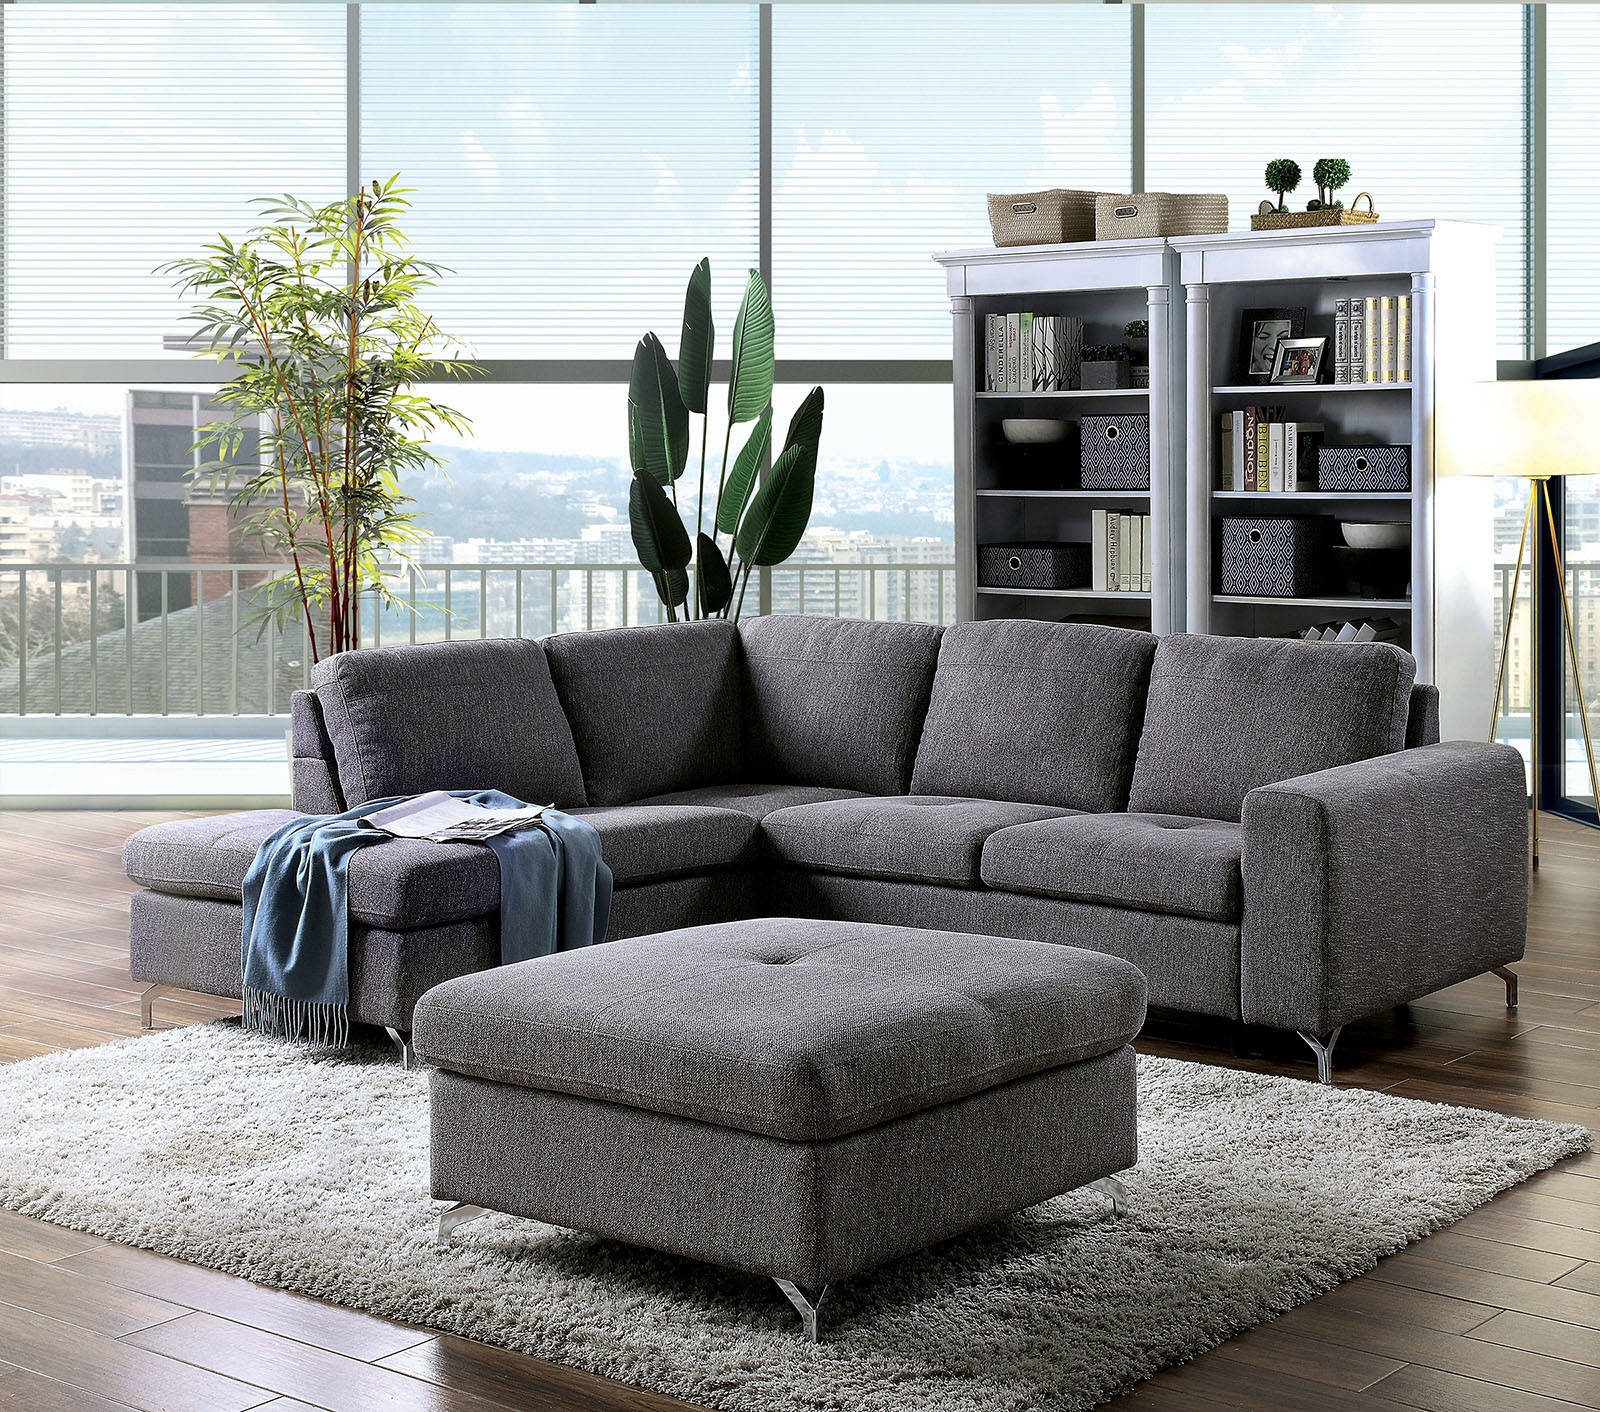 Furniture Of America Lizzie Gray Sectional With Ottoman